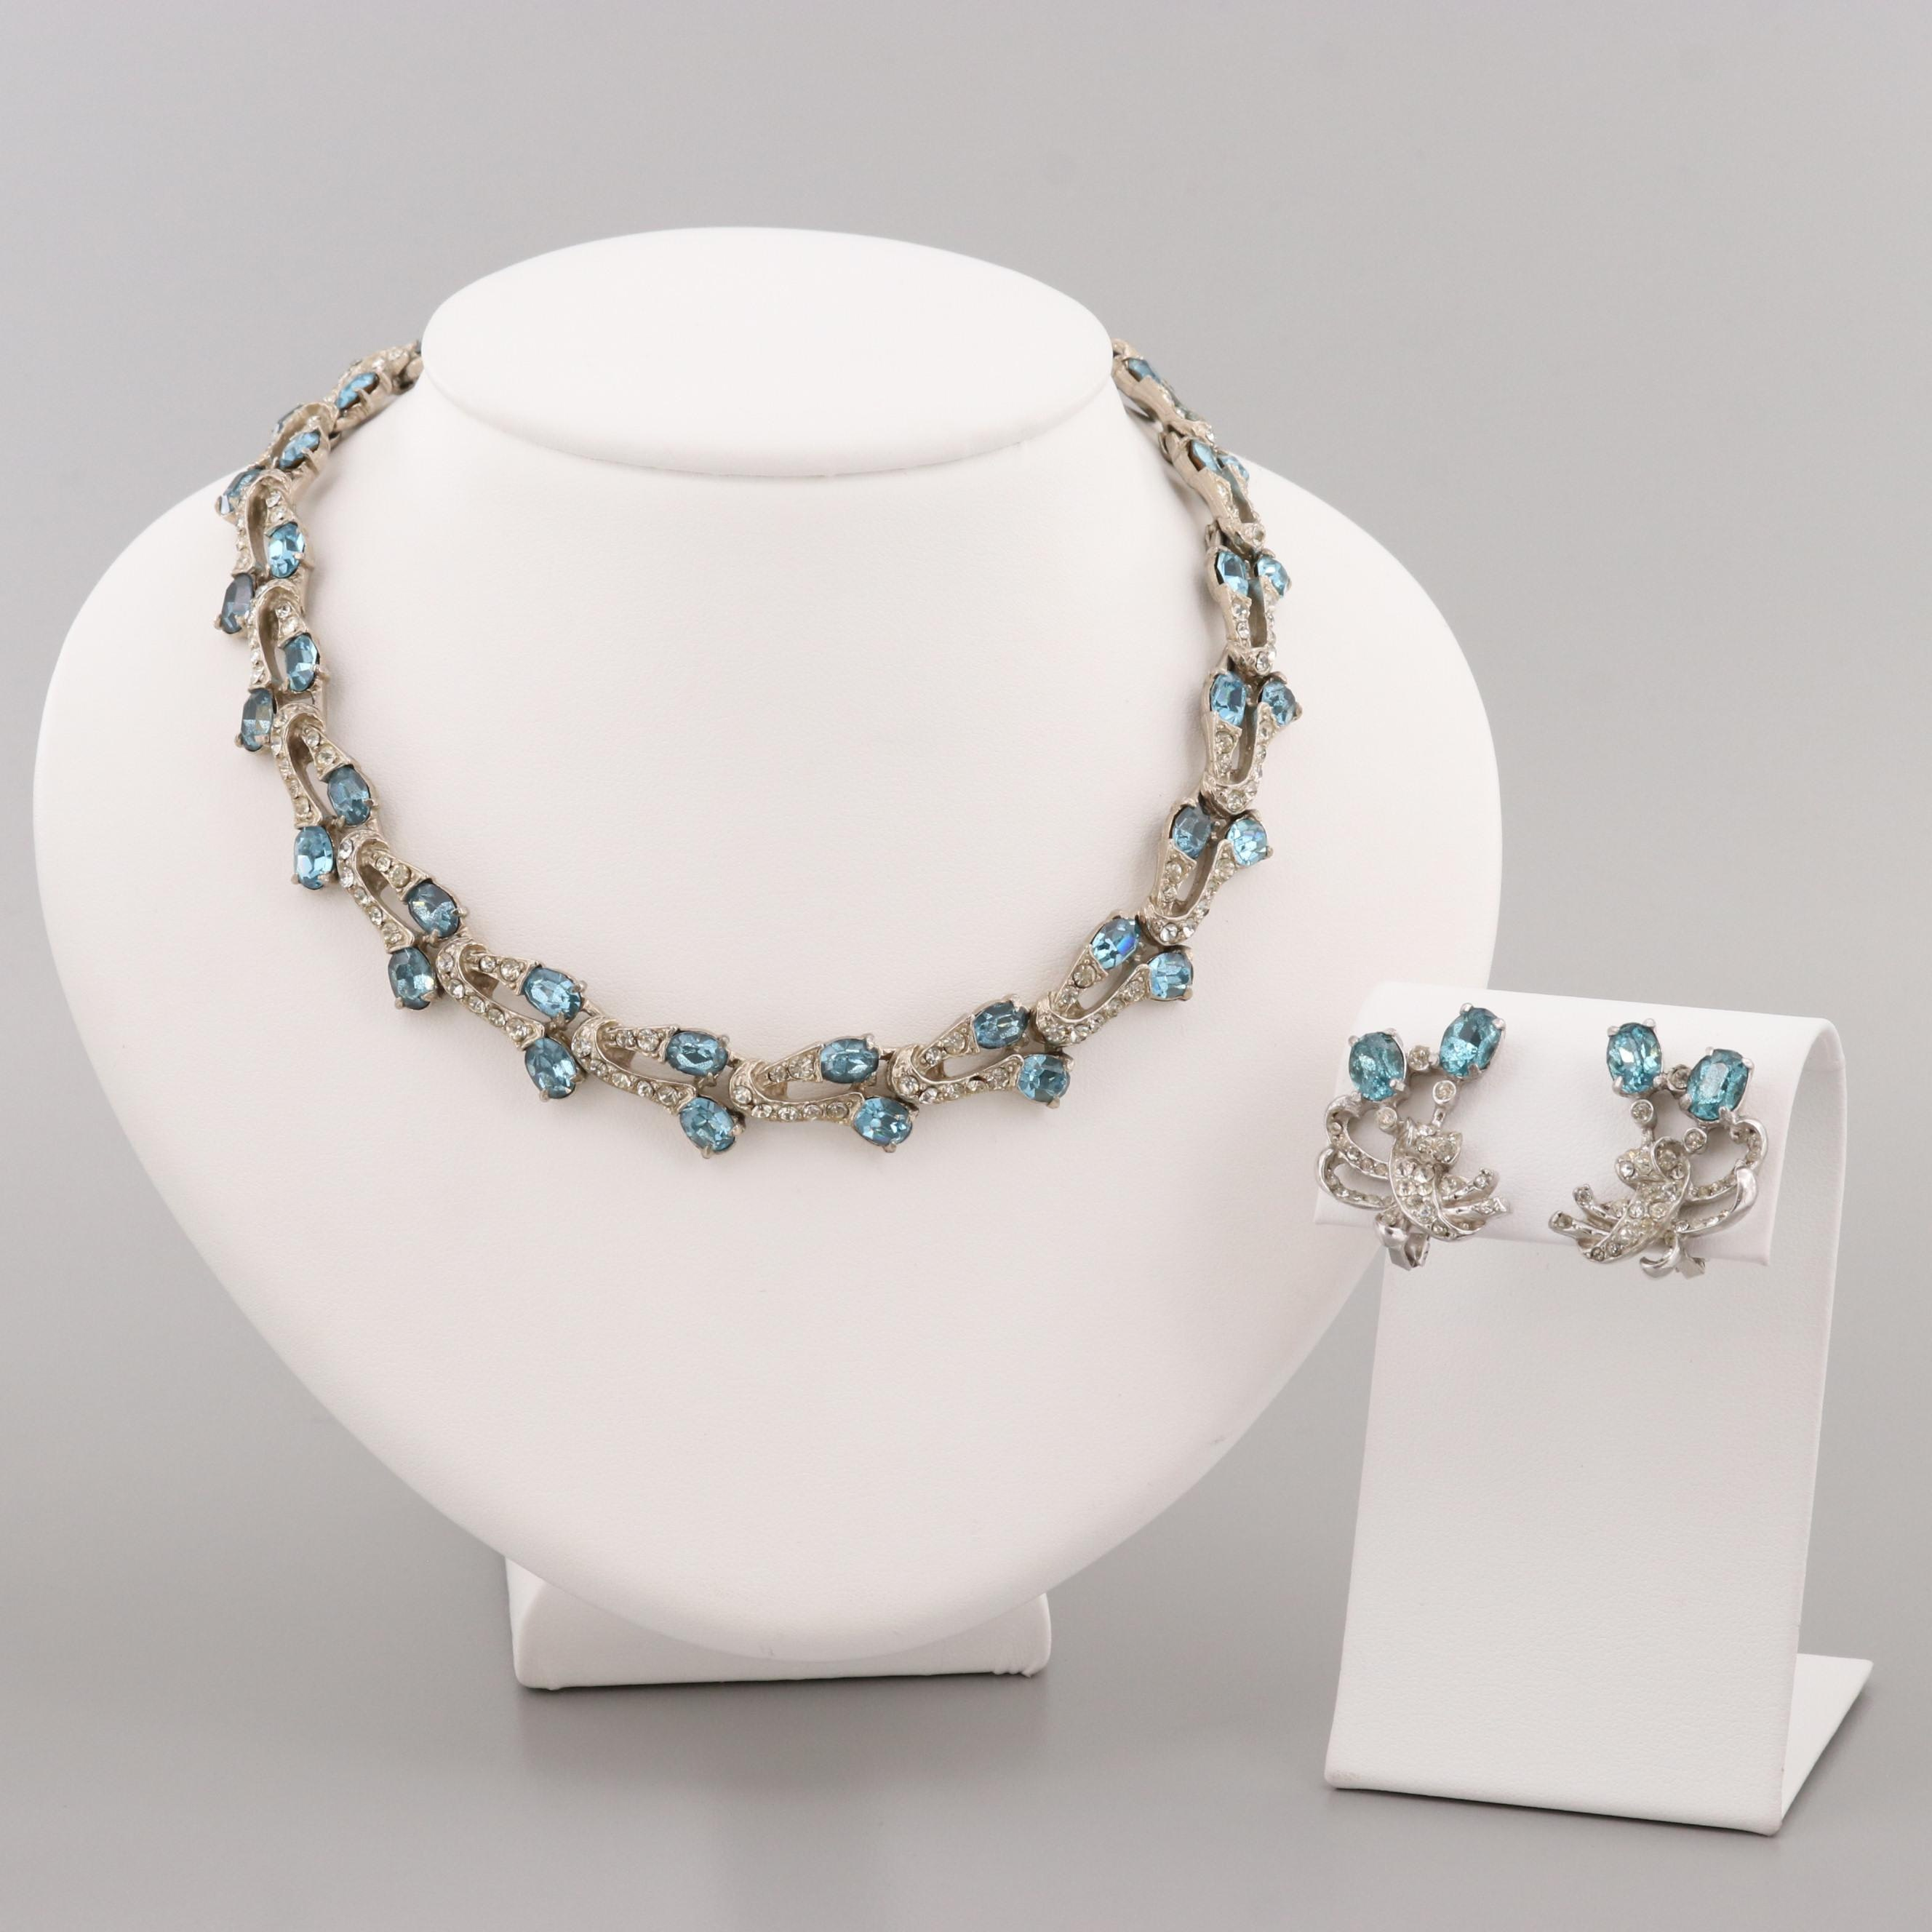 Joseph Wiesner N.Y. Silver Tone Faceted Glass Necklace and Earring Set